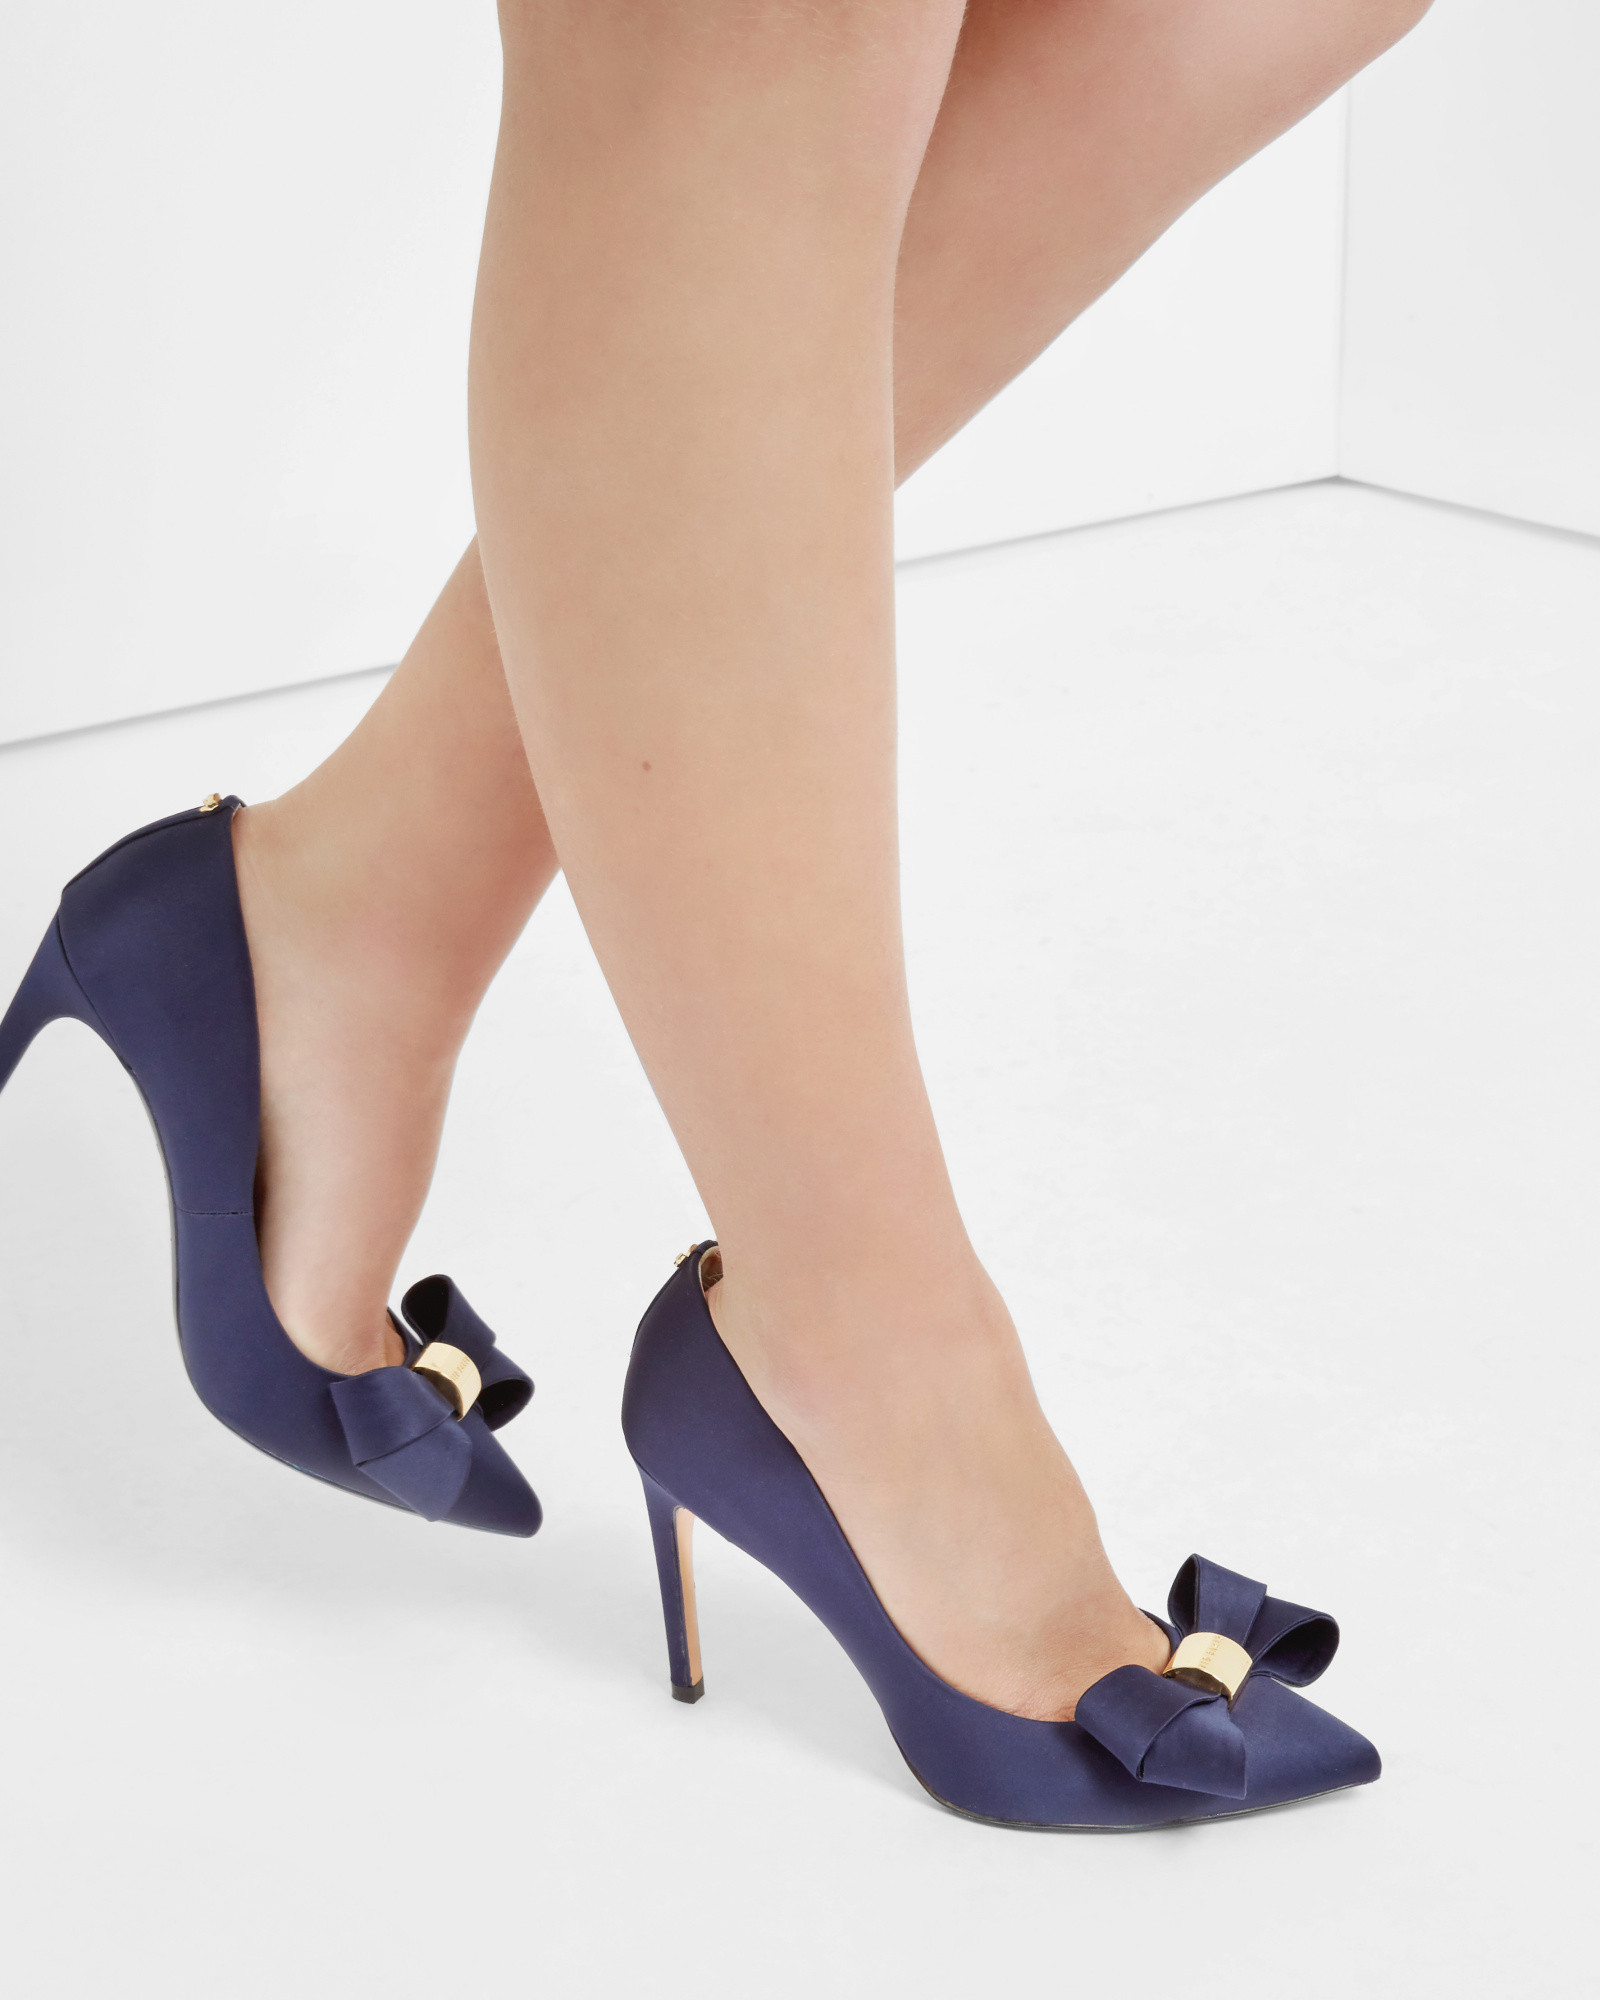 bf8dbd5316ba75 AlternateText new cheap  Ted Baker Statement Bow Court Shoes in Blue - Lyst  san francisco b7768 f332d ...